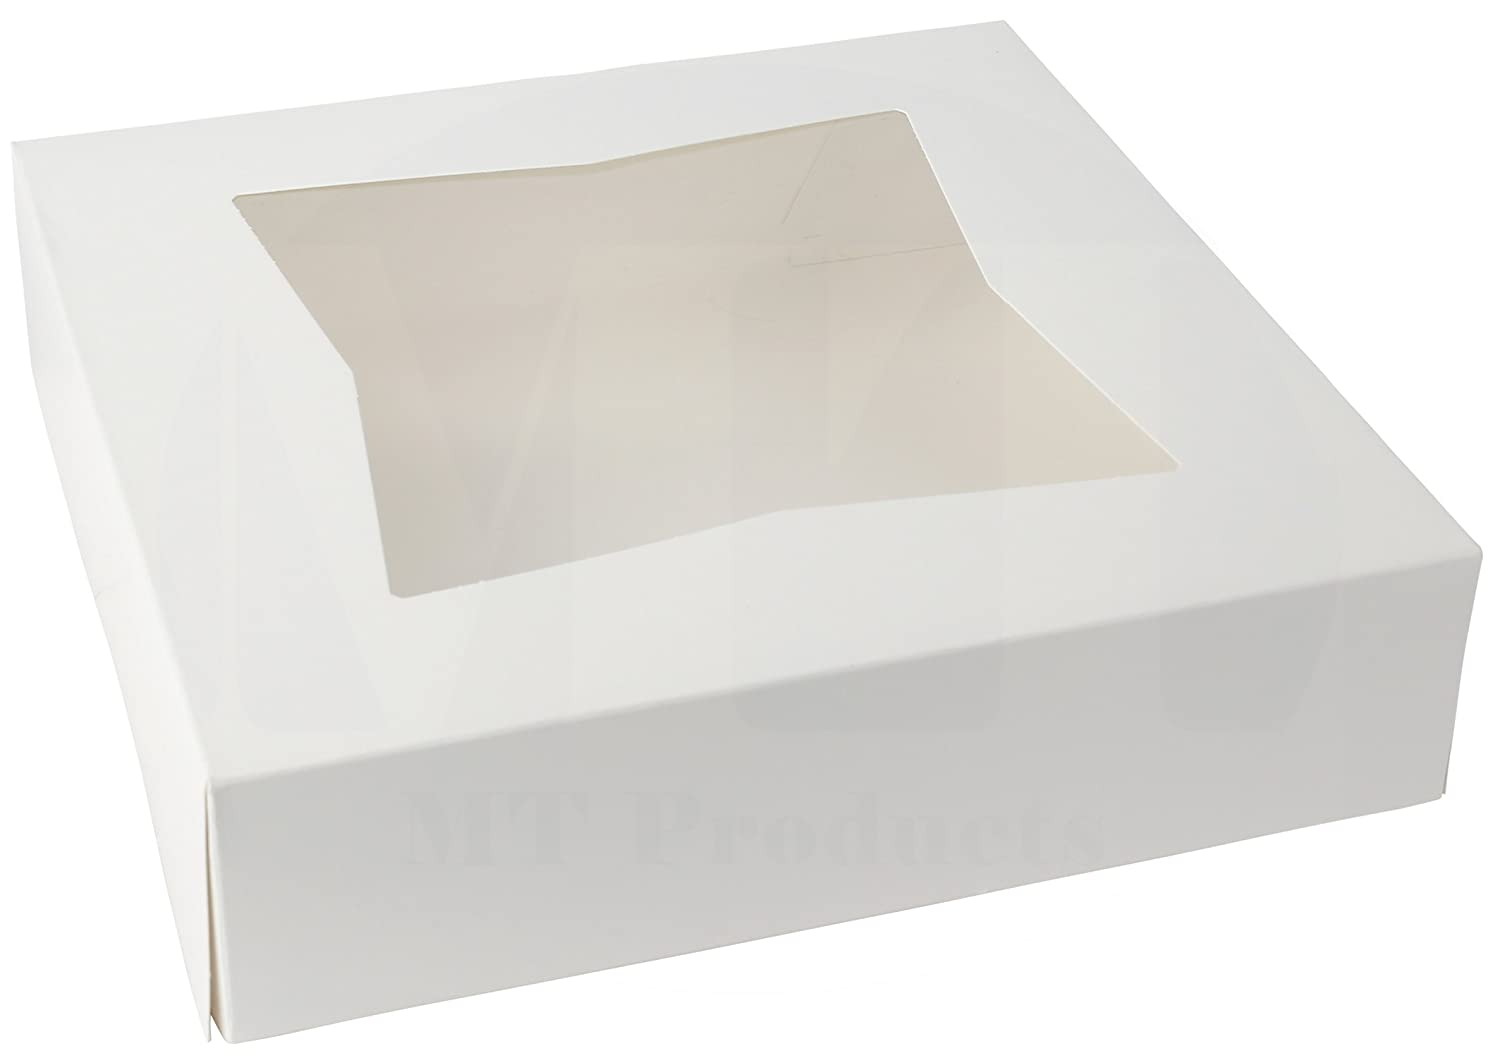 "10"" Length x 10"" Width x 2 1/2"" Height White Kraft Paperboard Auto-Popup Window Pie/Bakery Box by MT Products (Pack of 15)"